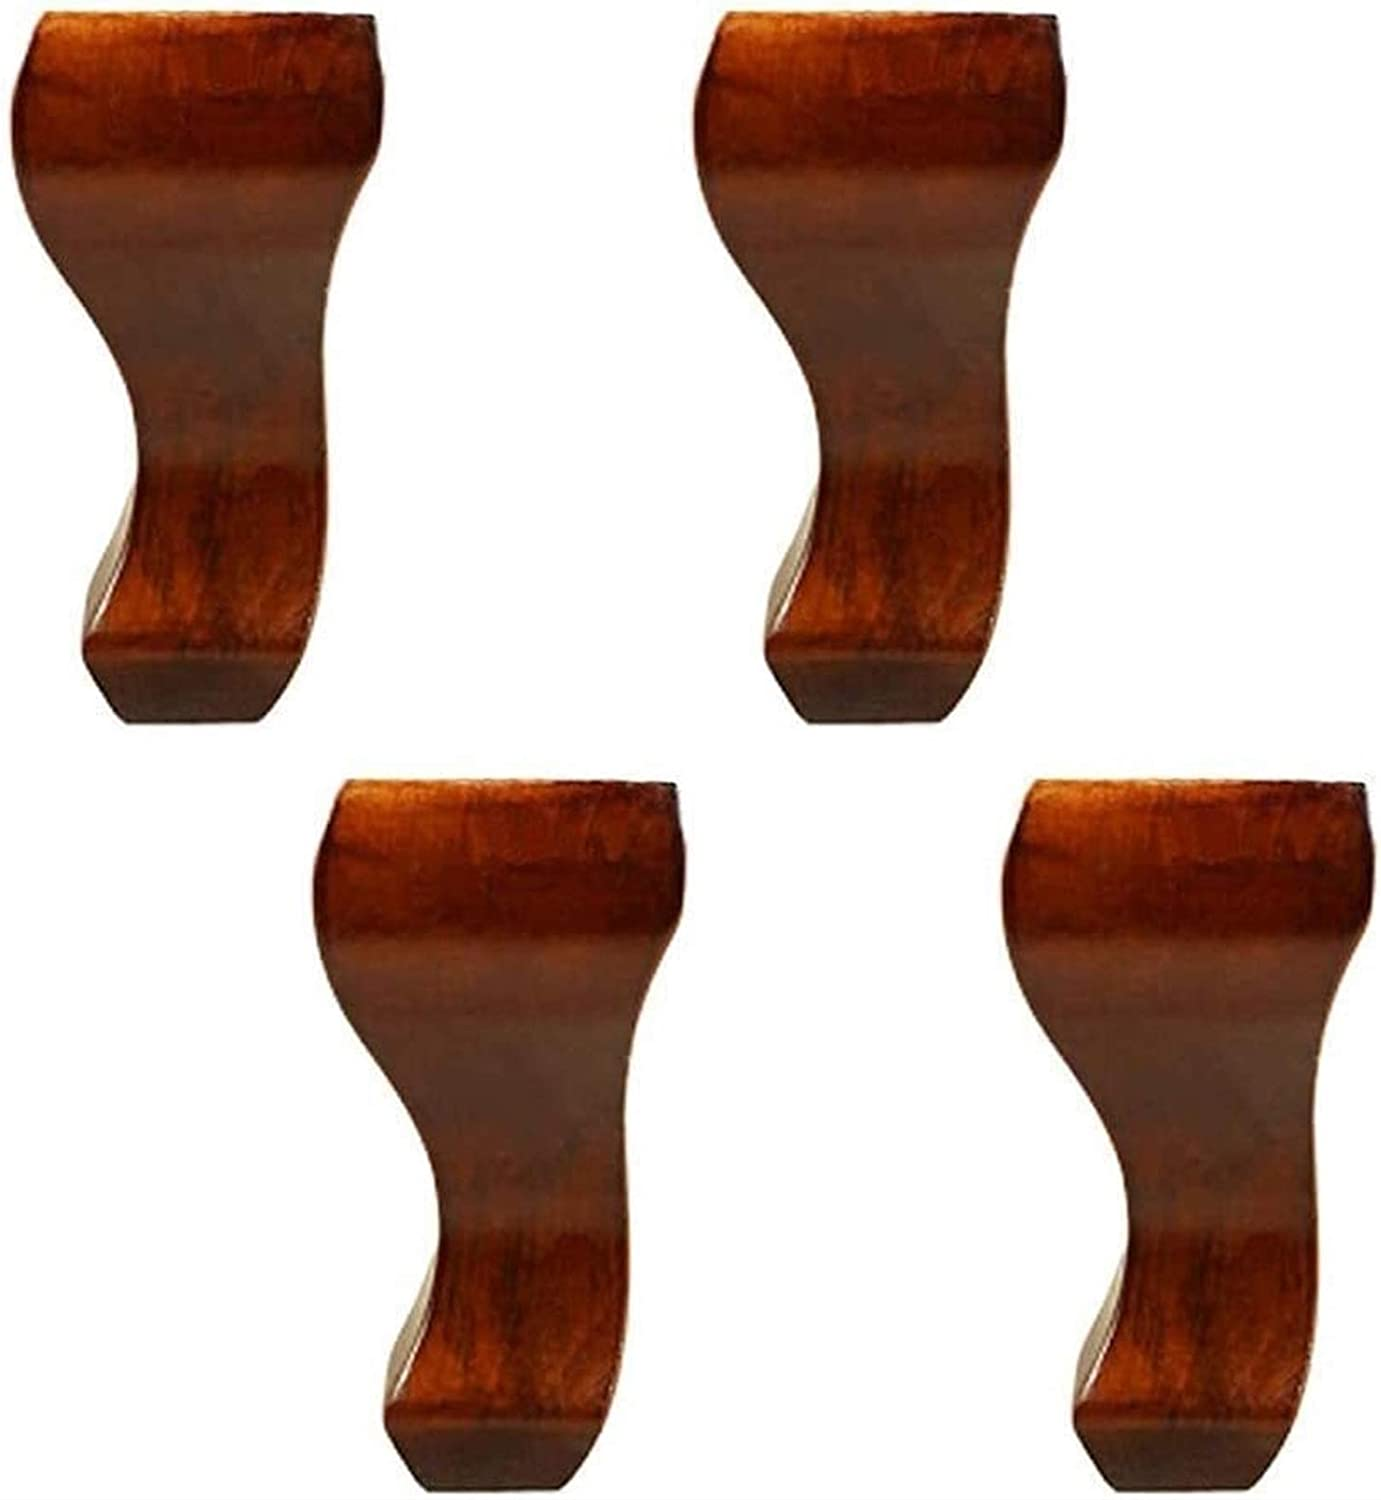 MNZDDDP excellence Furniture Legs Wooden Table Leg Pads Reli New life